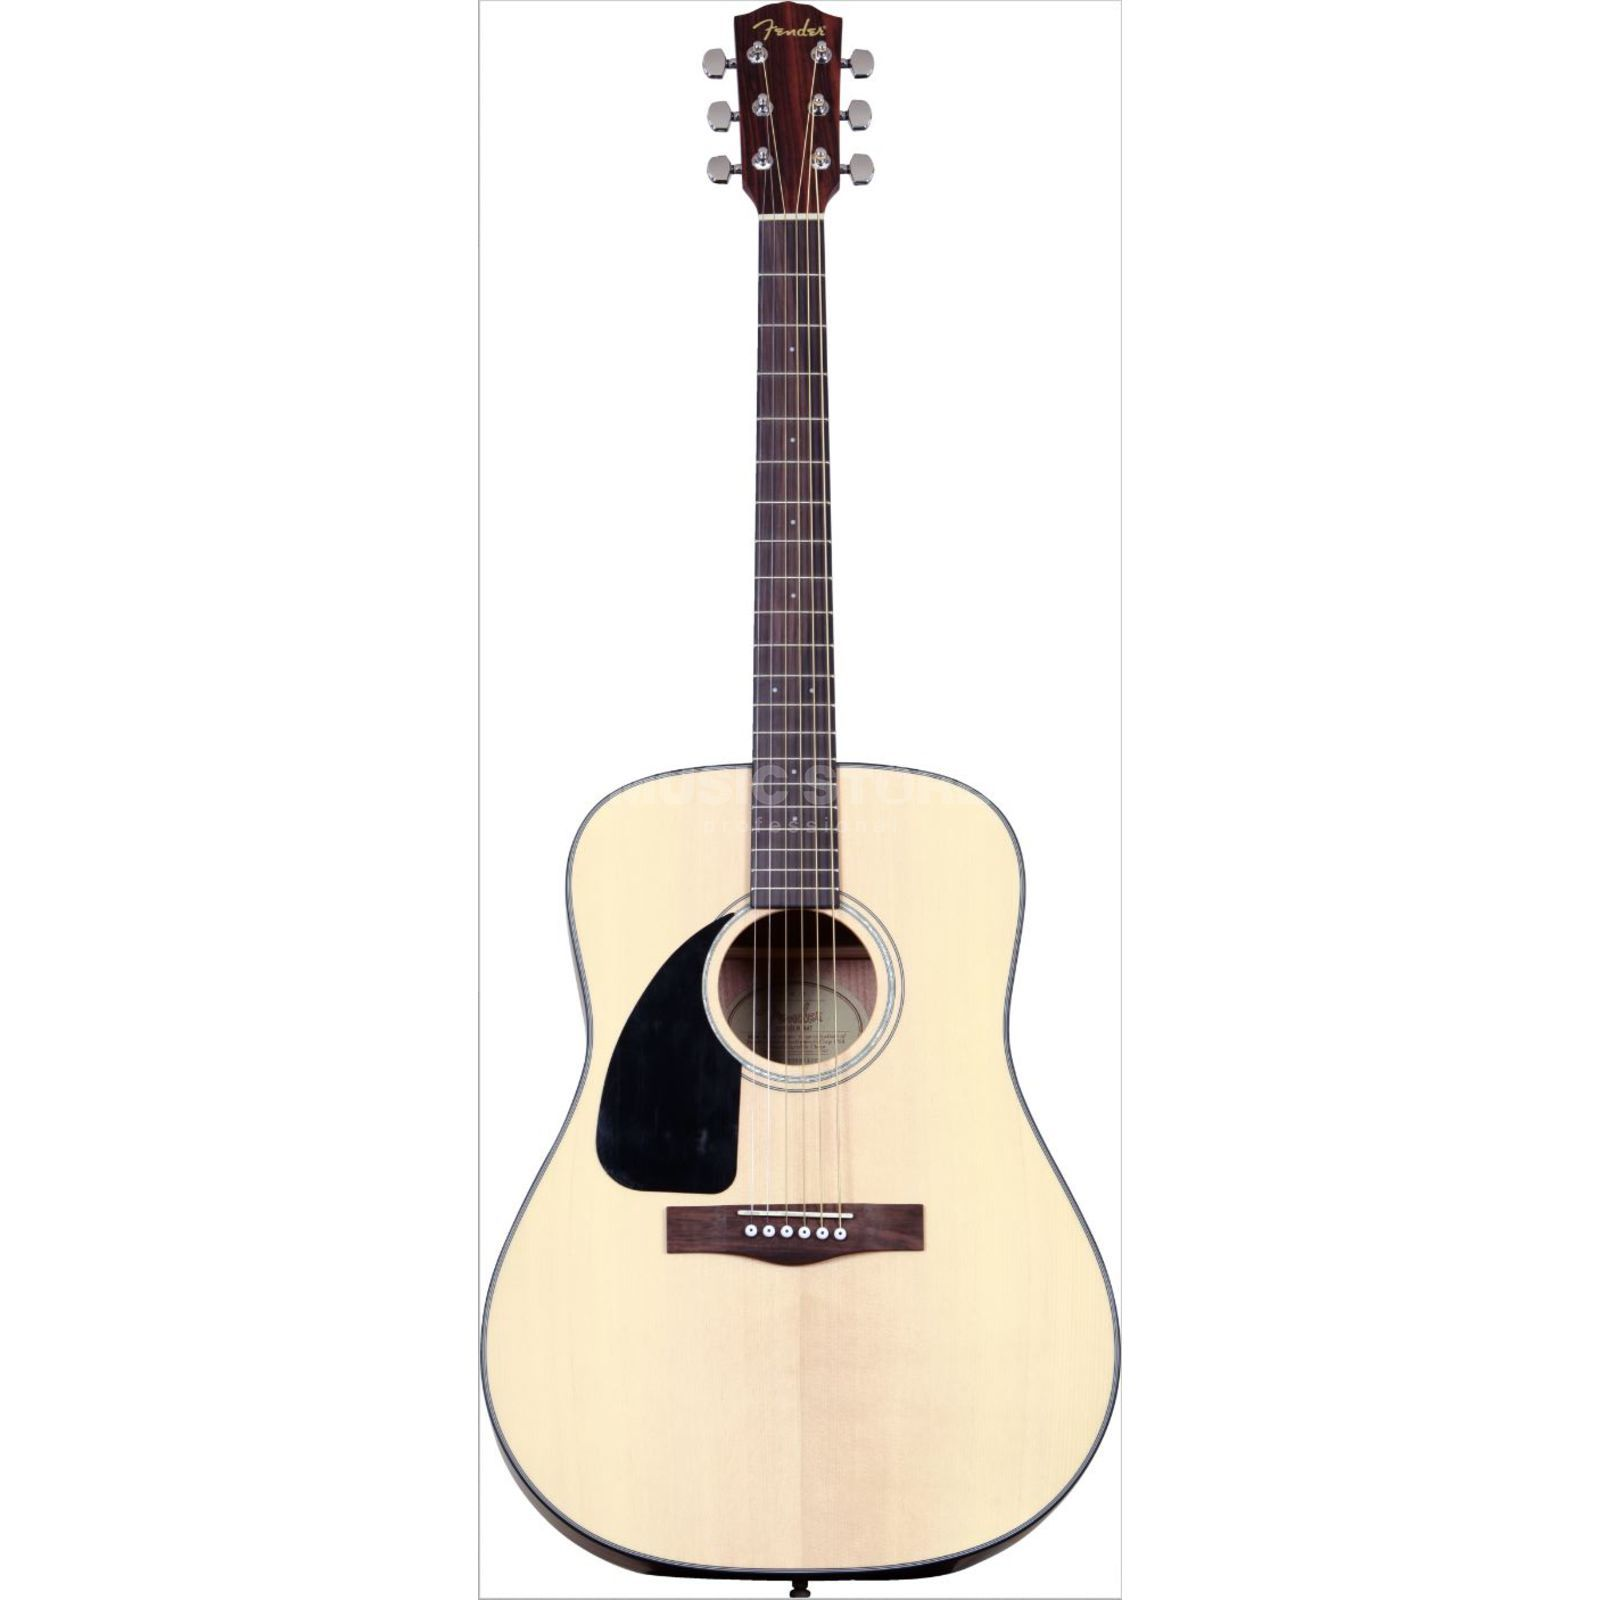 Fender CD-100-LH NAT Lefthand, Natural Produktbild